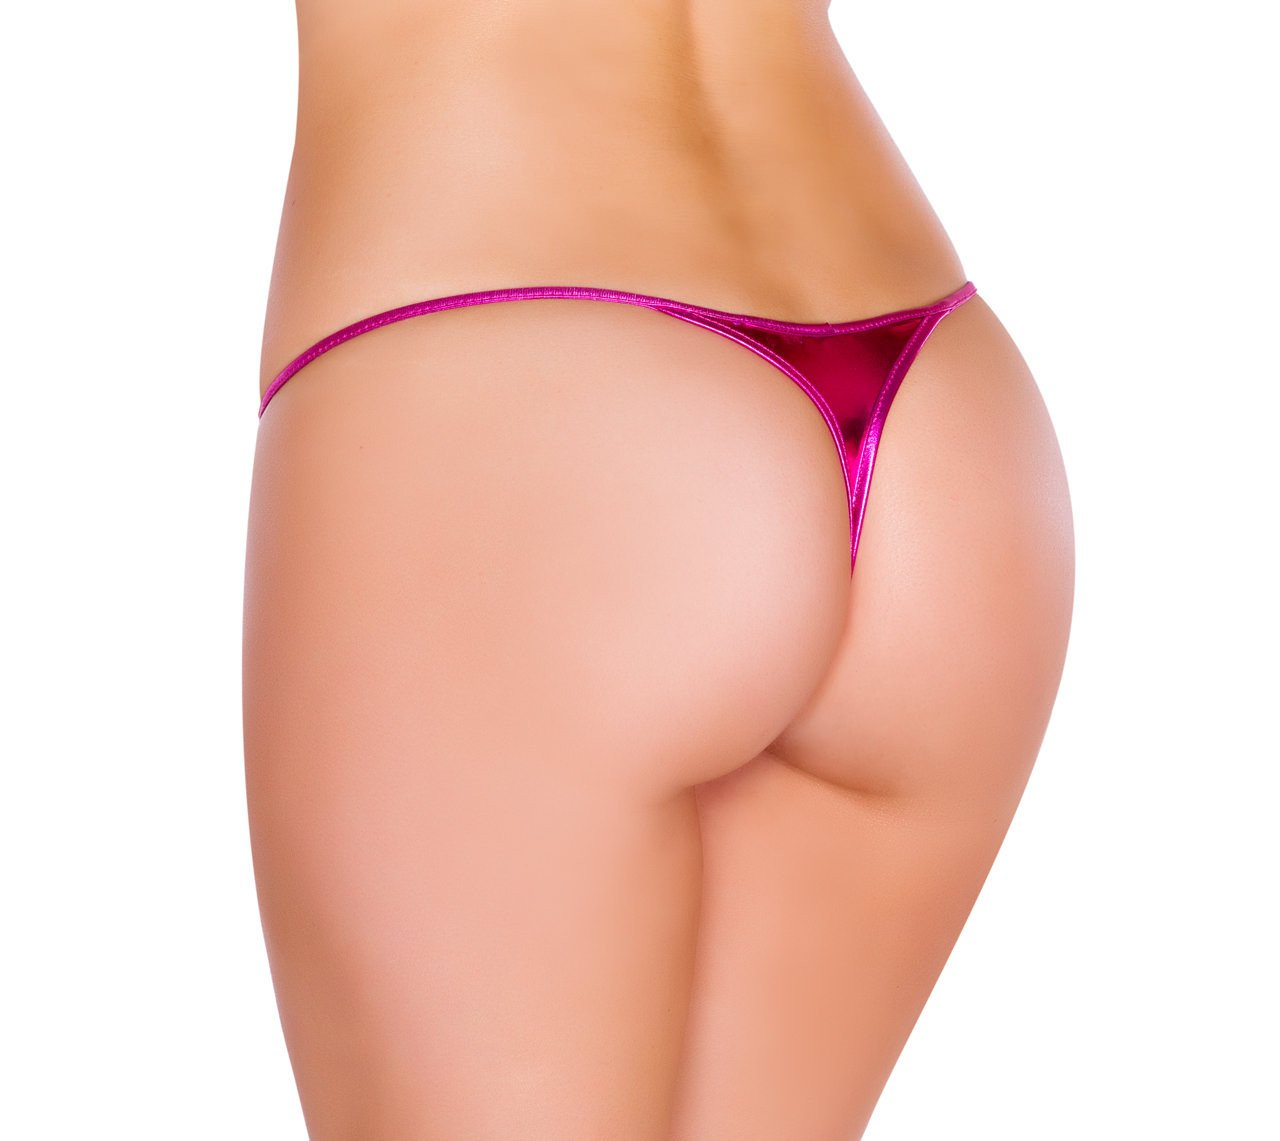 Buy Sexy Metallic Bikini Bottom Thong from Rave Fix for $12.00 with Same Day Shipping Designed by Roma Costume SJLQ-Blk-O/S